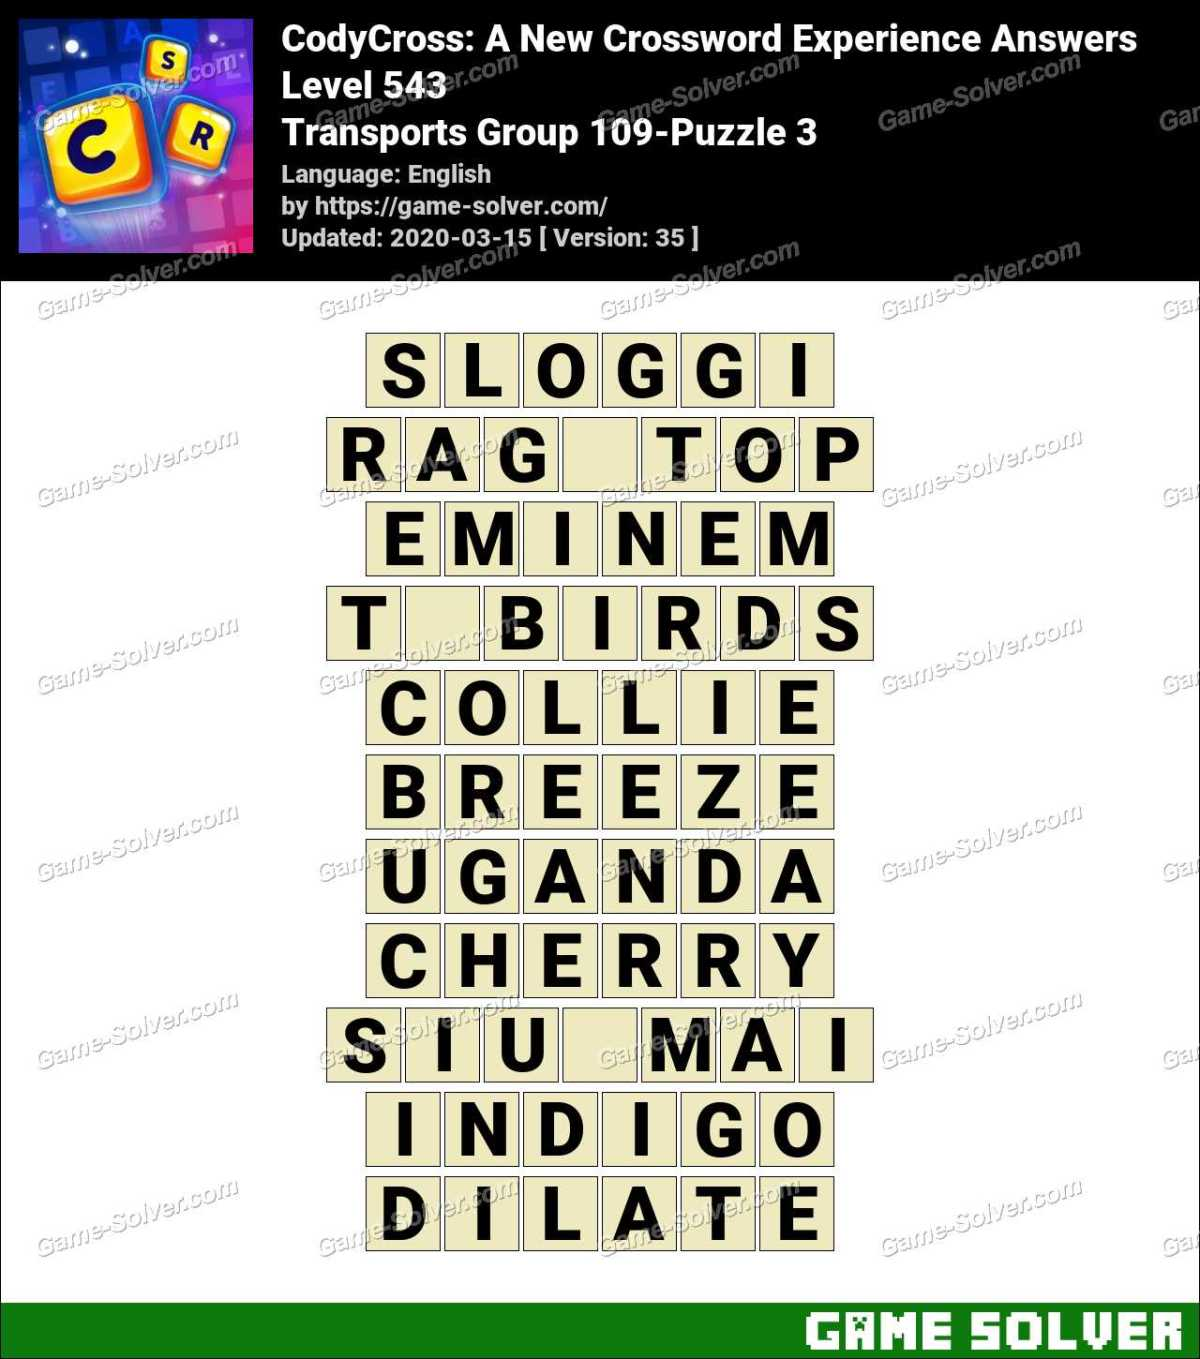 CodyCross Transports Group 109-Puzzle 3 Answers